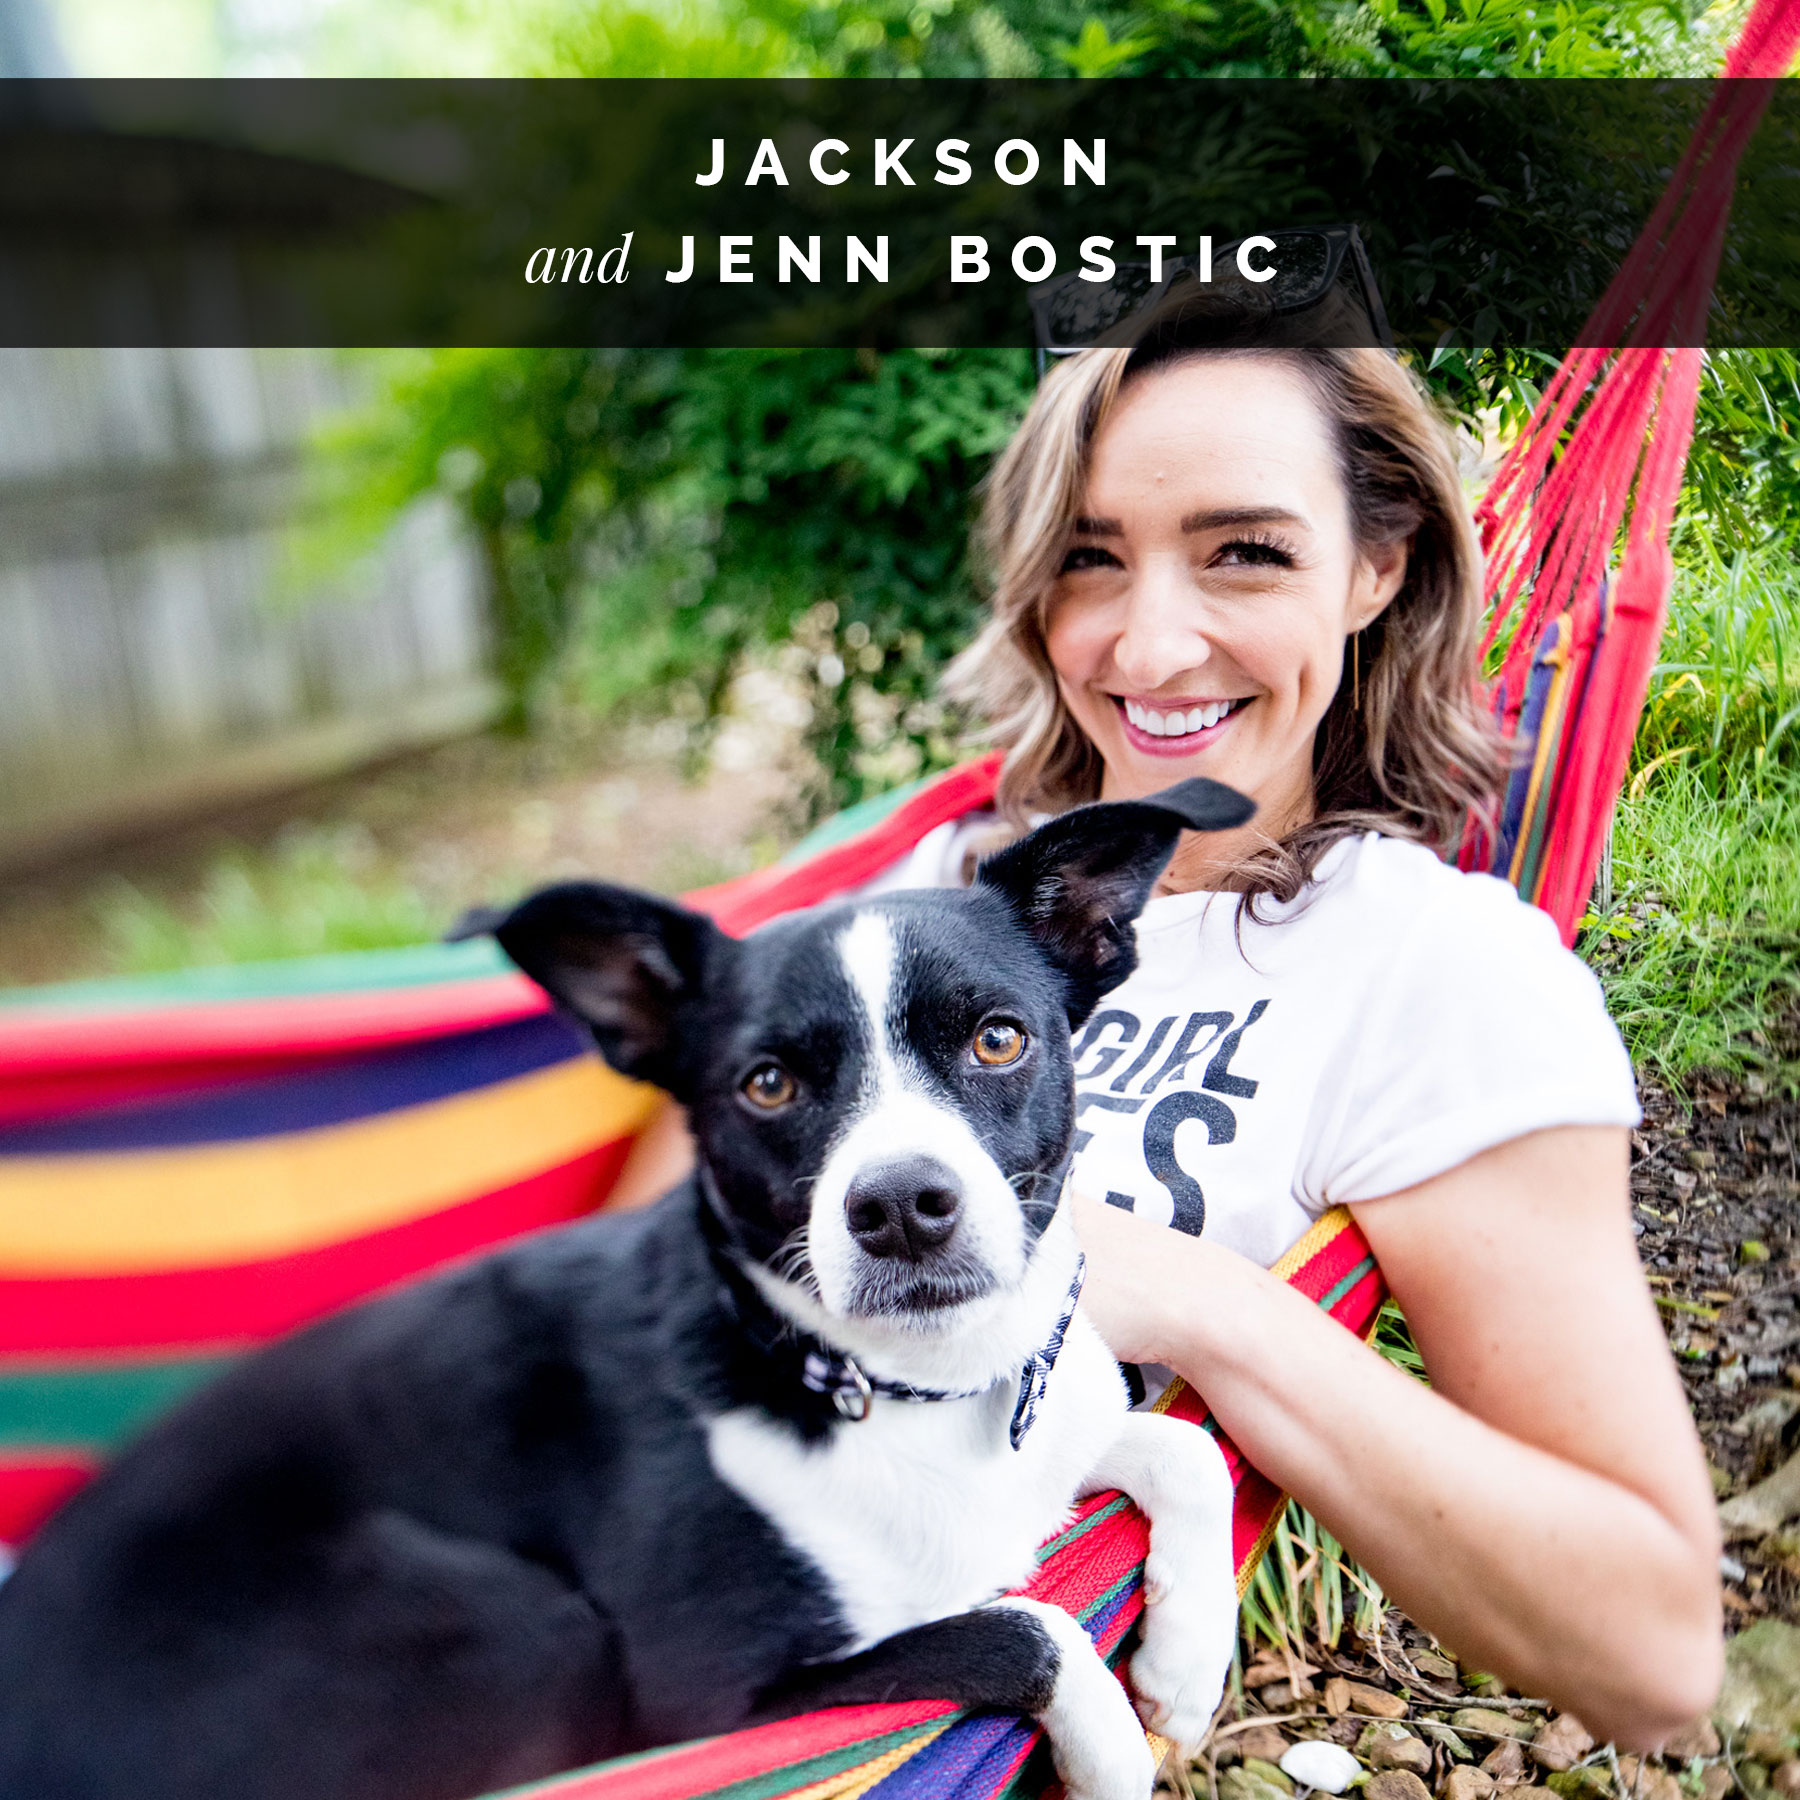 Jenn Bostic and her dog, Jackson | Celebrity Dogs and Their People boy Sara Kauss